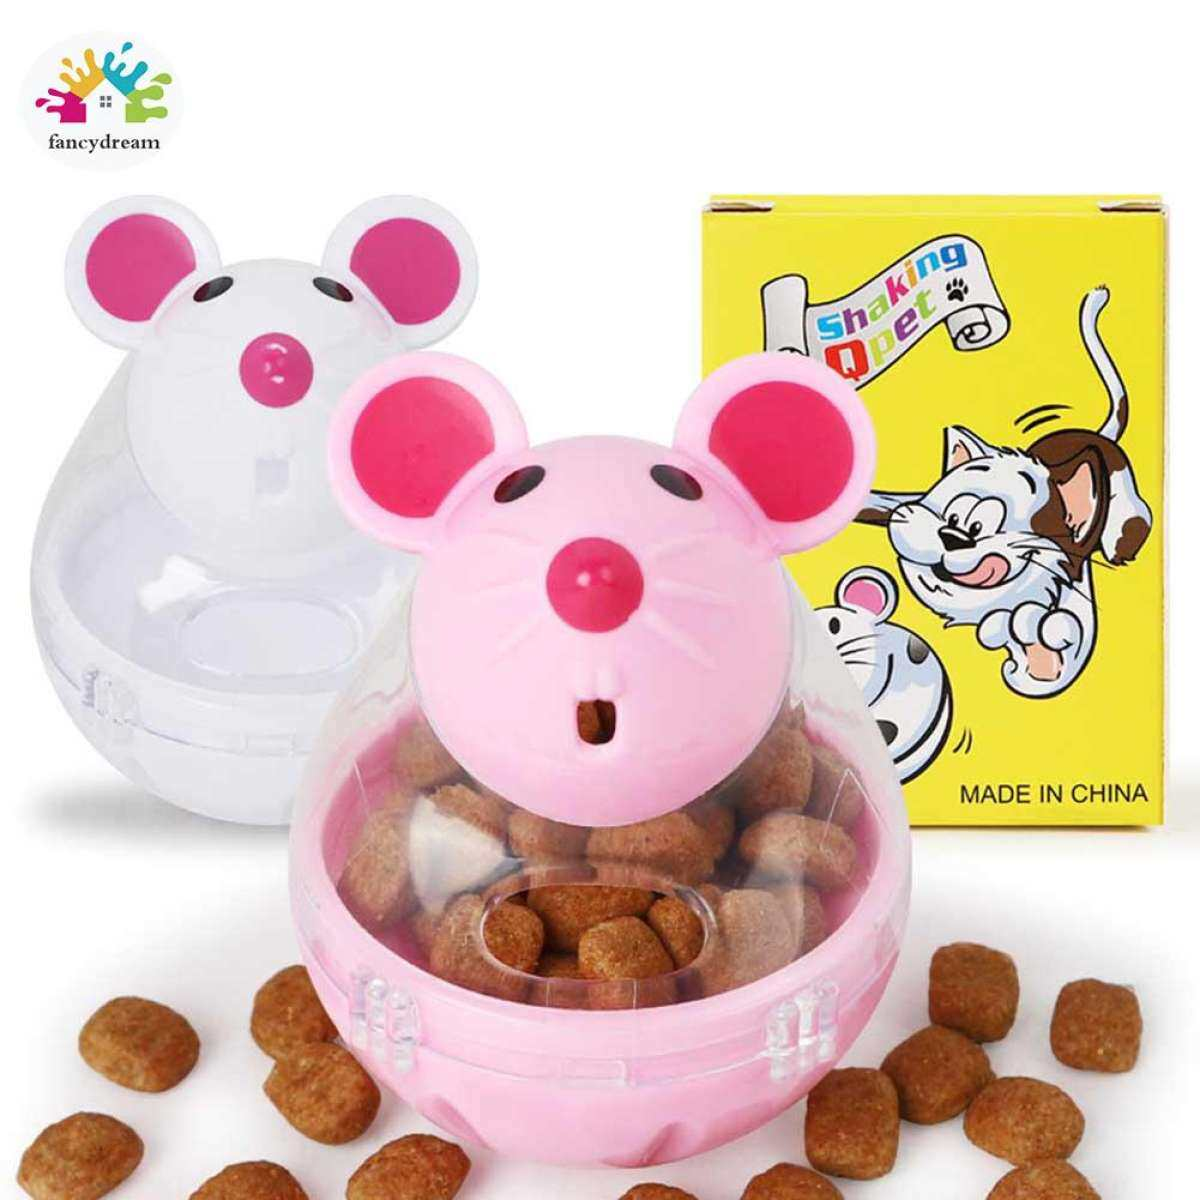 Fancydream Cat Tumbler Toy Automatic Food Dispenser Funny Mouse Shape Plastic Container Pet Supplies Gift Lazada